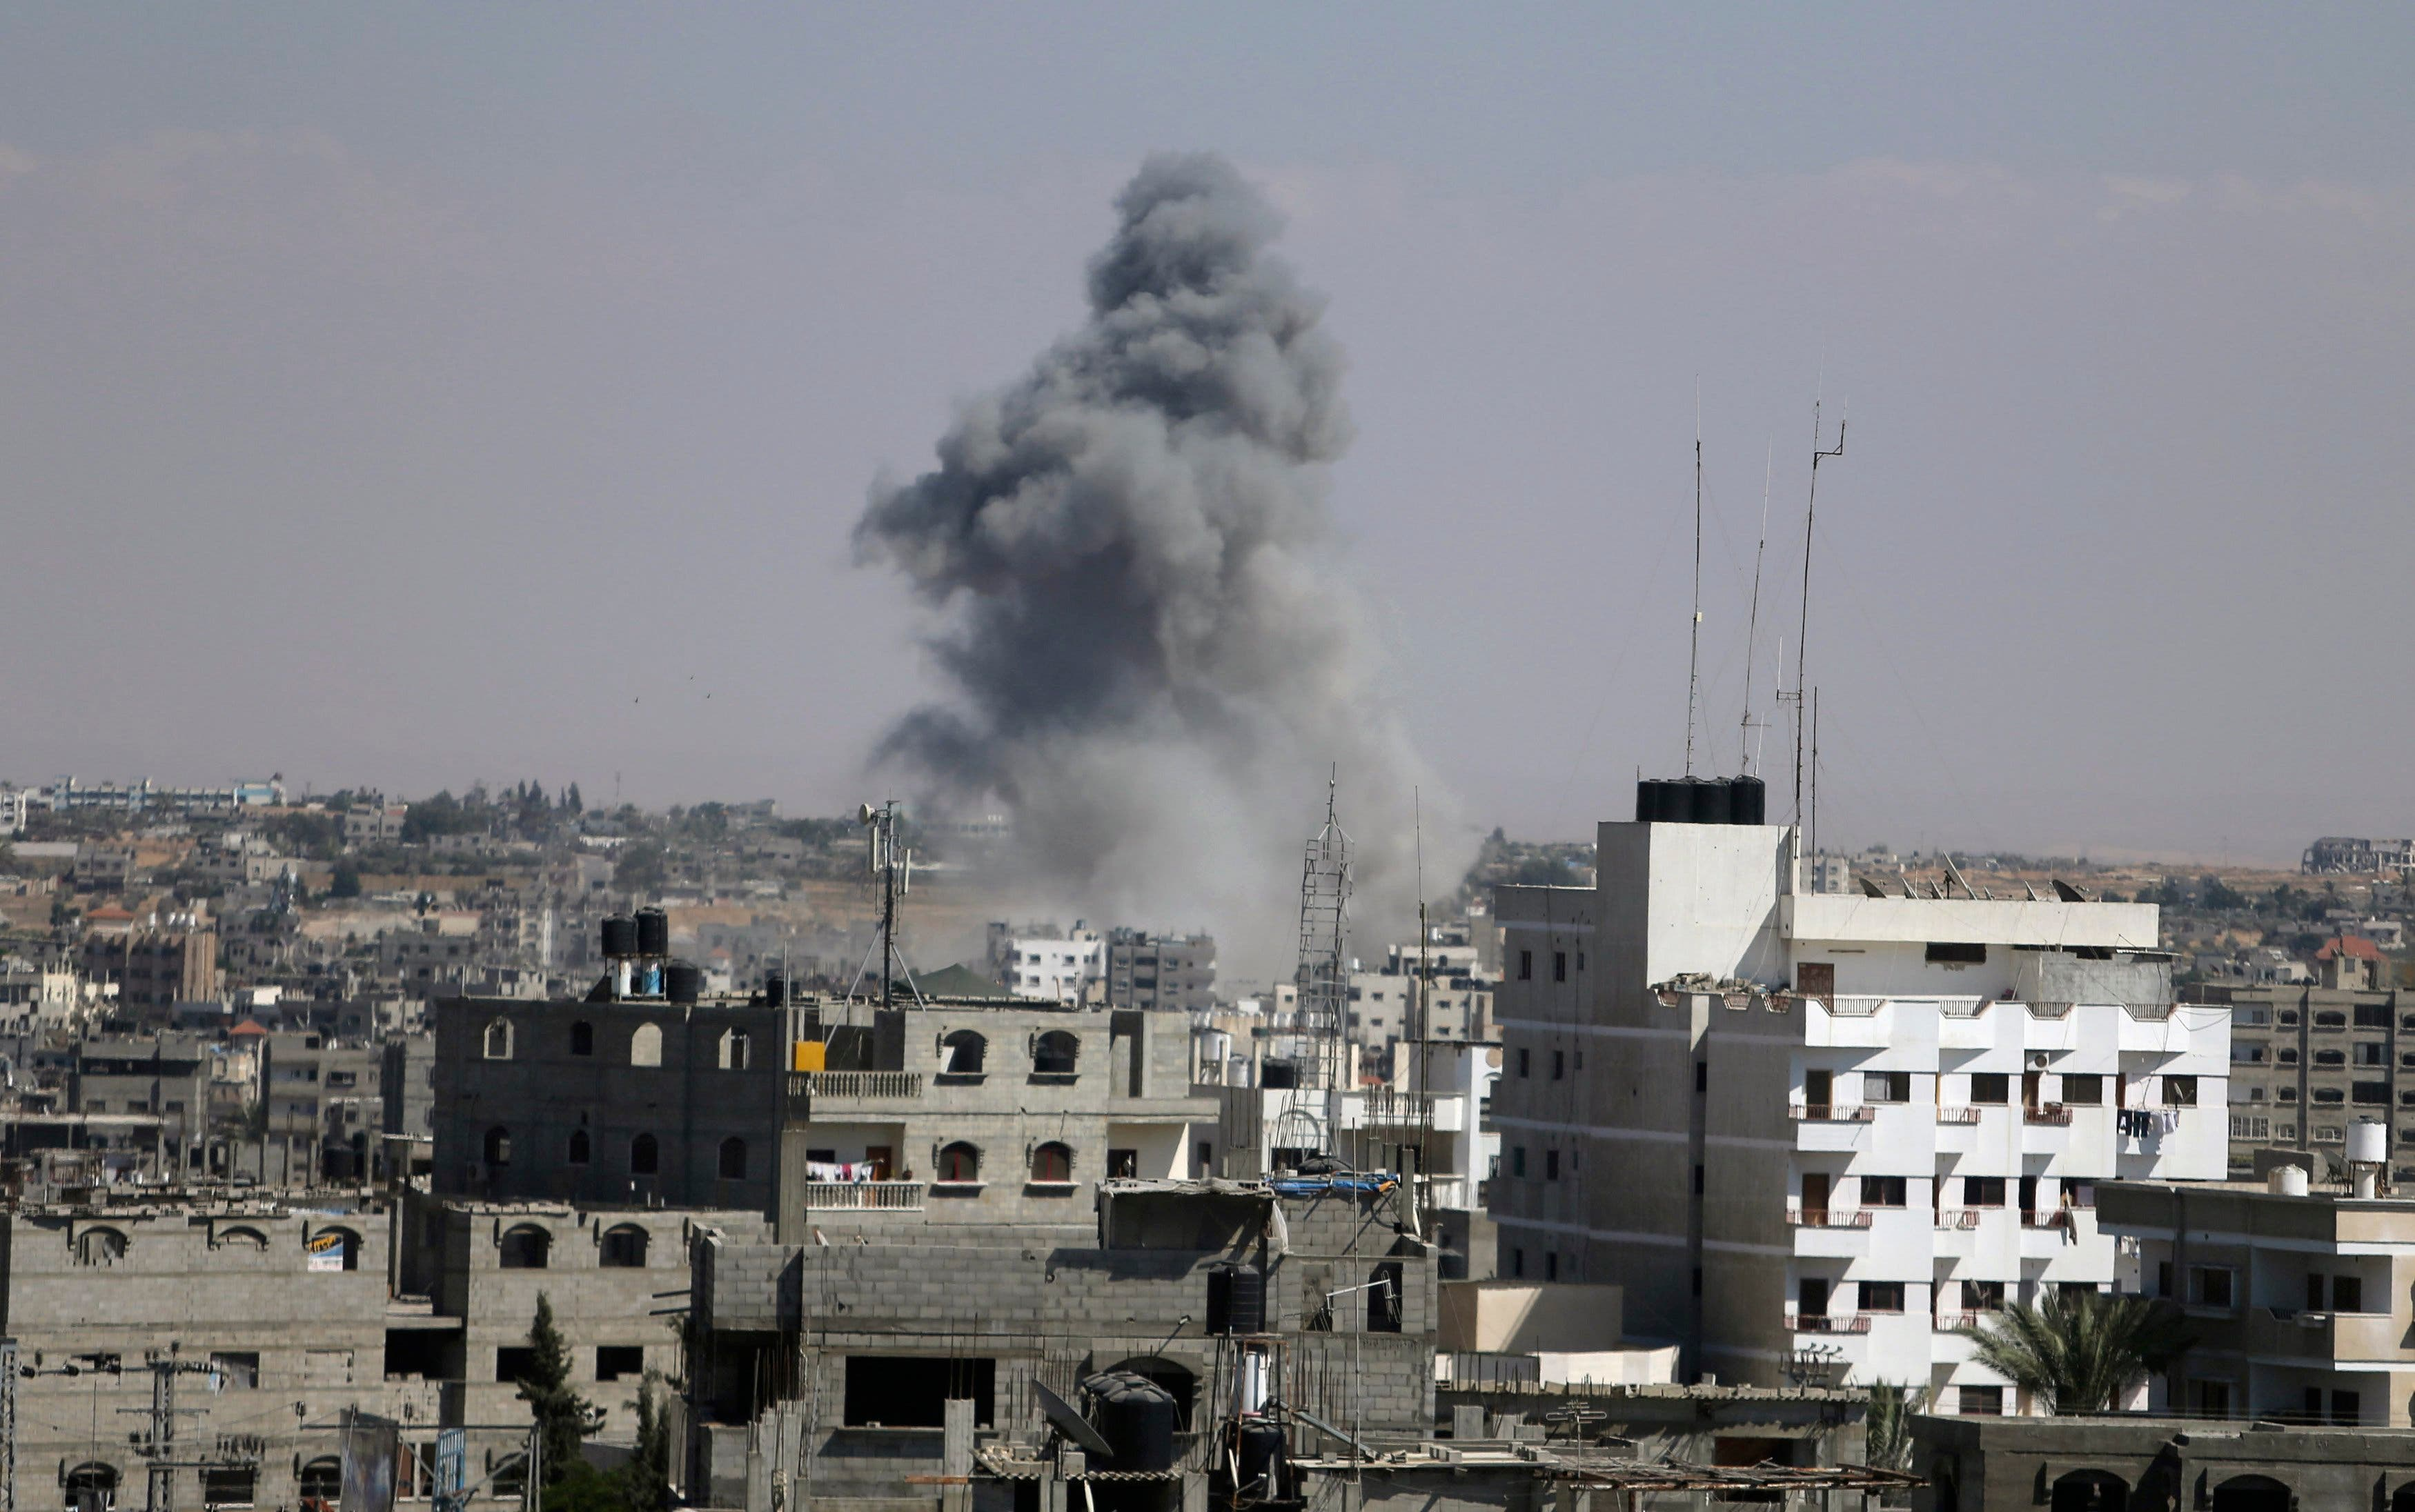 Smoke rises following what witnesses said was an Israeli air strike in Rafah in the southern Gaza Strip August 3, 2014. An Israeli air strike killed at least 10 people